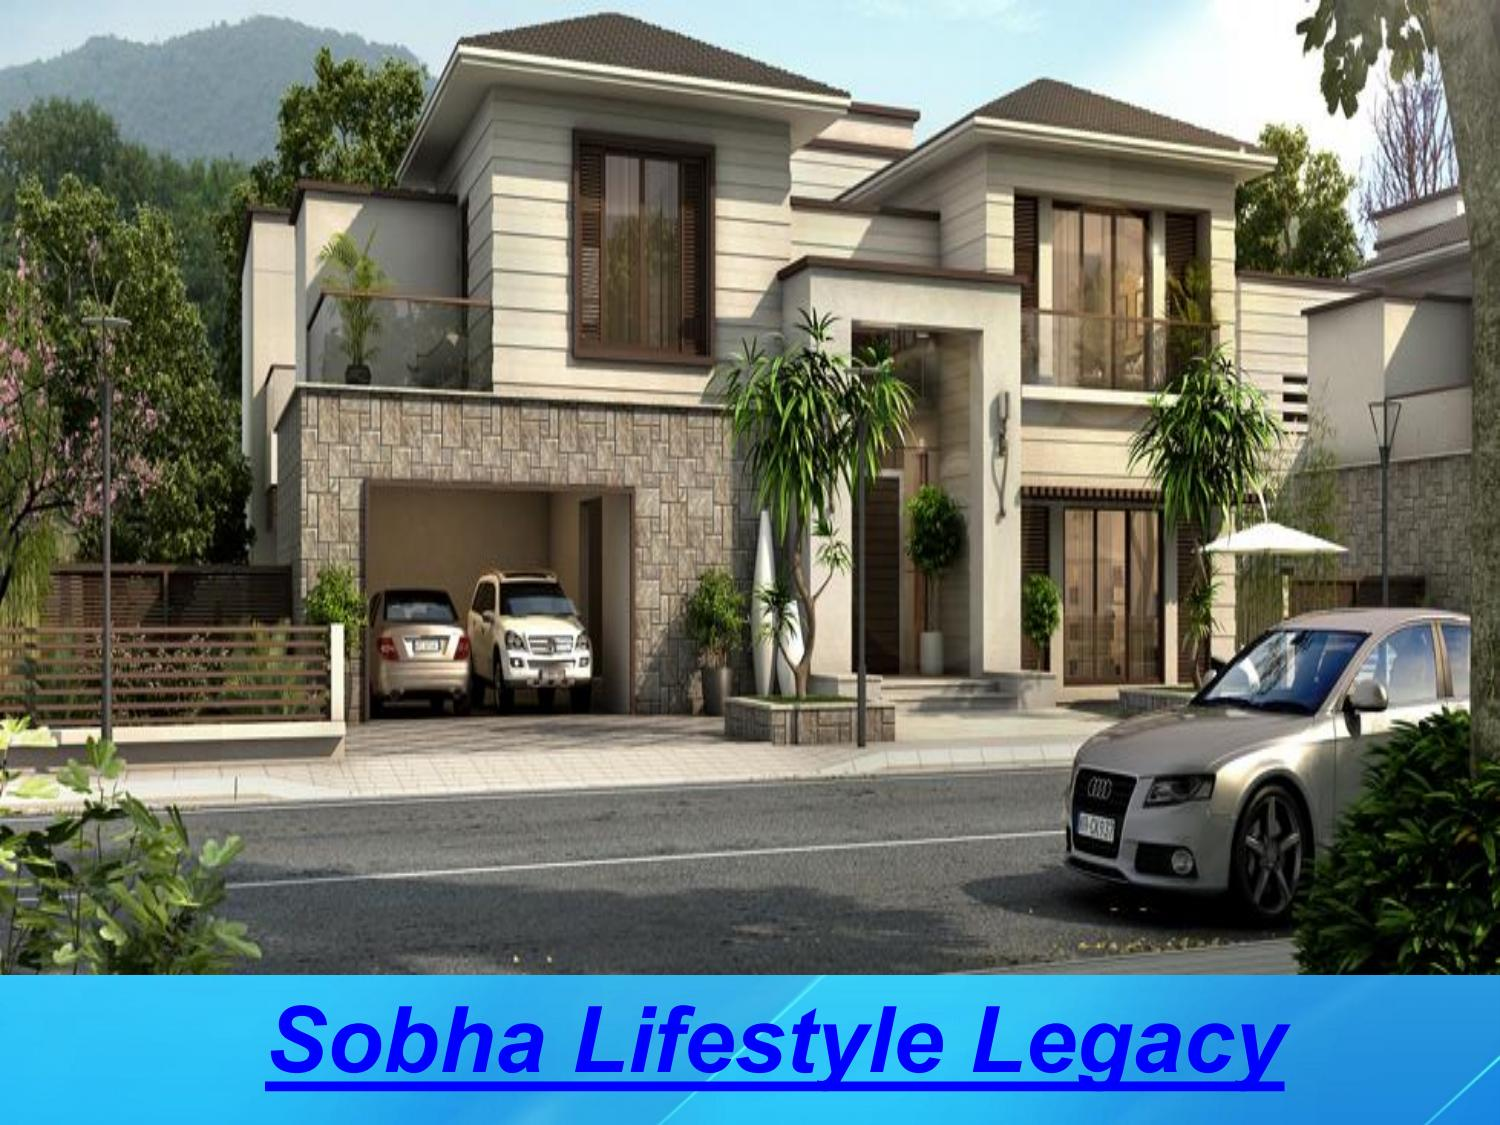 4 bhk villas in bangalore by ranjith issuu for 4 bhk villas in bangalore